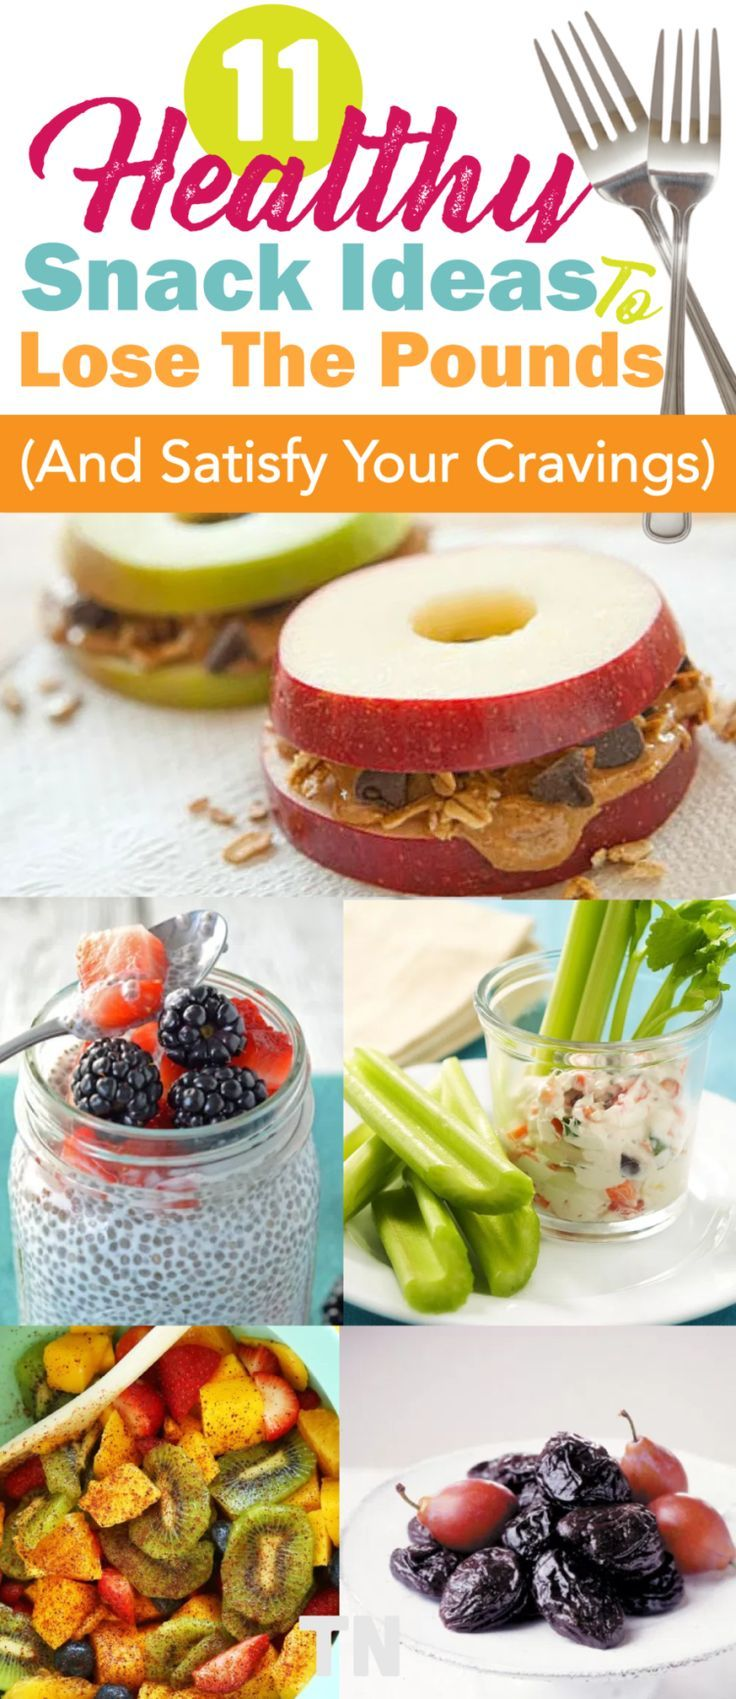 What healthy snacks to eat to lose weight